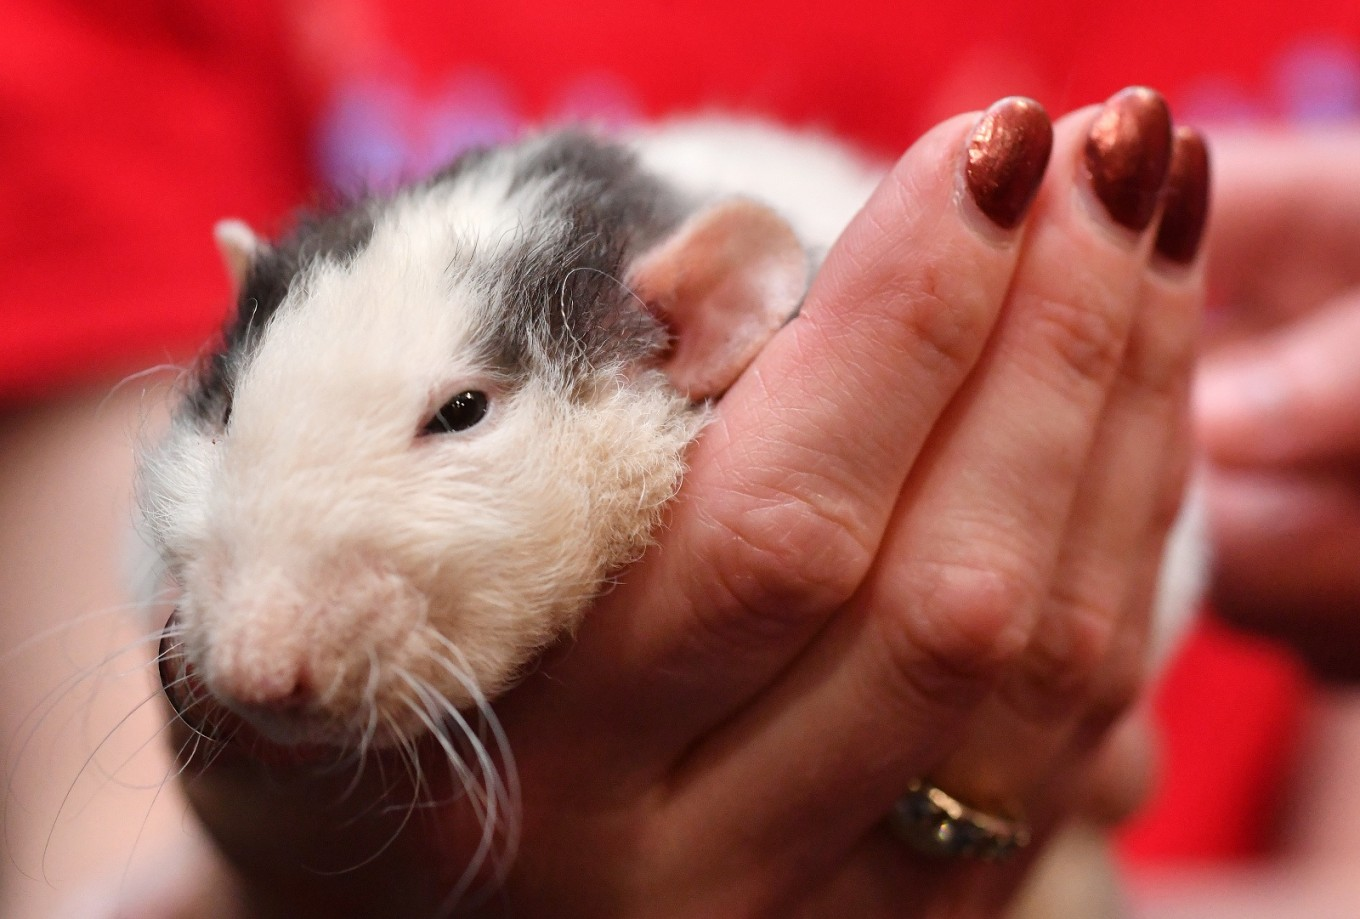 I'll have a rat with that: San Francisco's new rodent cafe